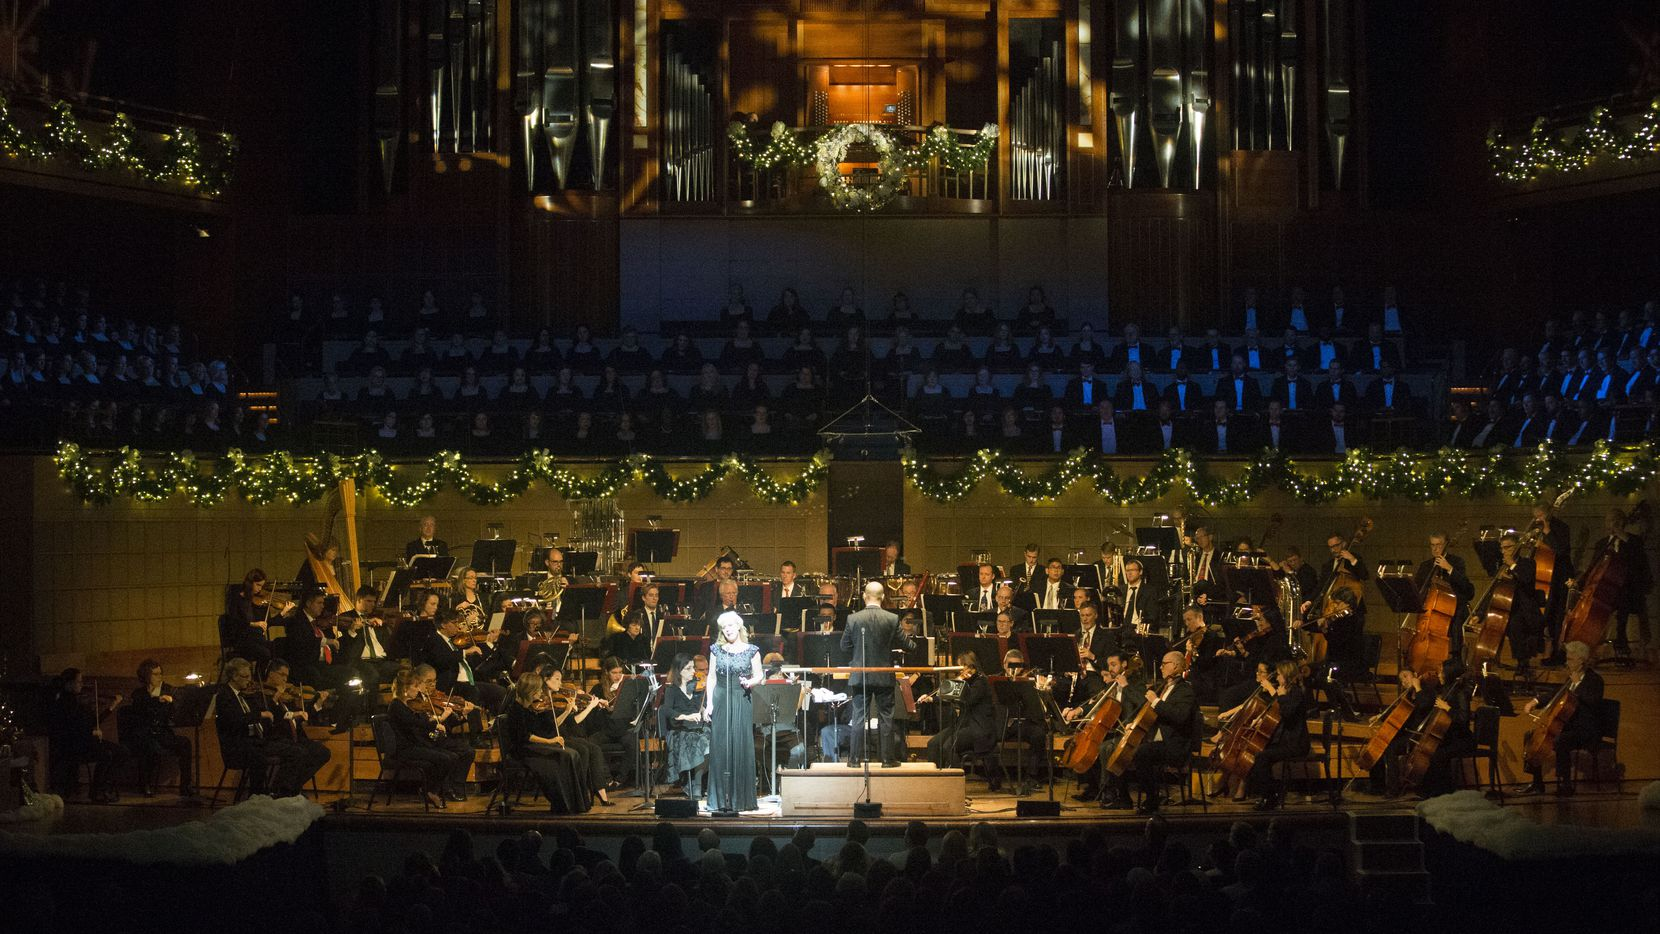 Soprano singer Katy Shackleton Williams, led by conductor Lawrence Loh, sings as the Dallas Symphony Orchestra performs its Christmas Pops concert at Meyerson Symphony Center in Dallas on Sunday, Dec. 9, 2018. Christmas Pops is an annual holiday themed concert.